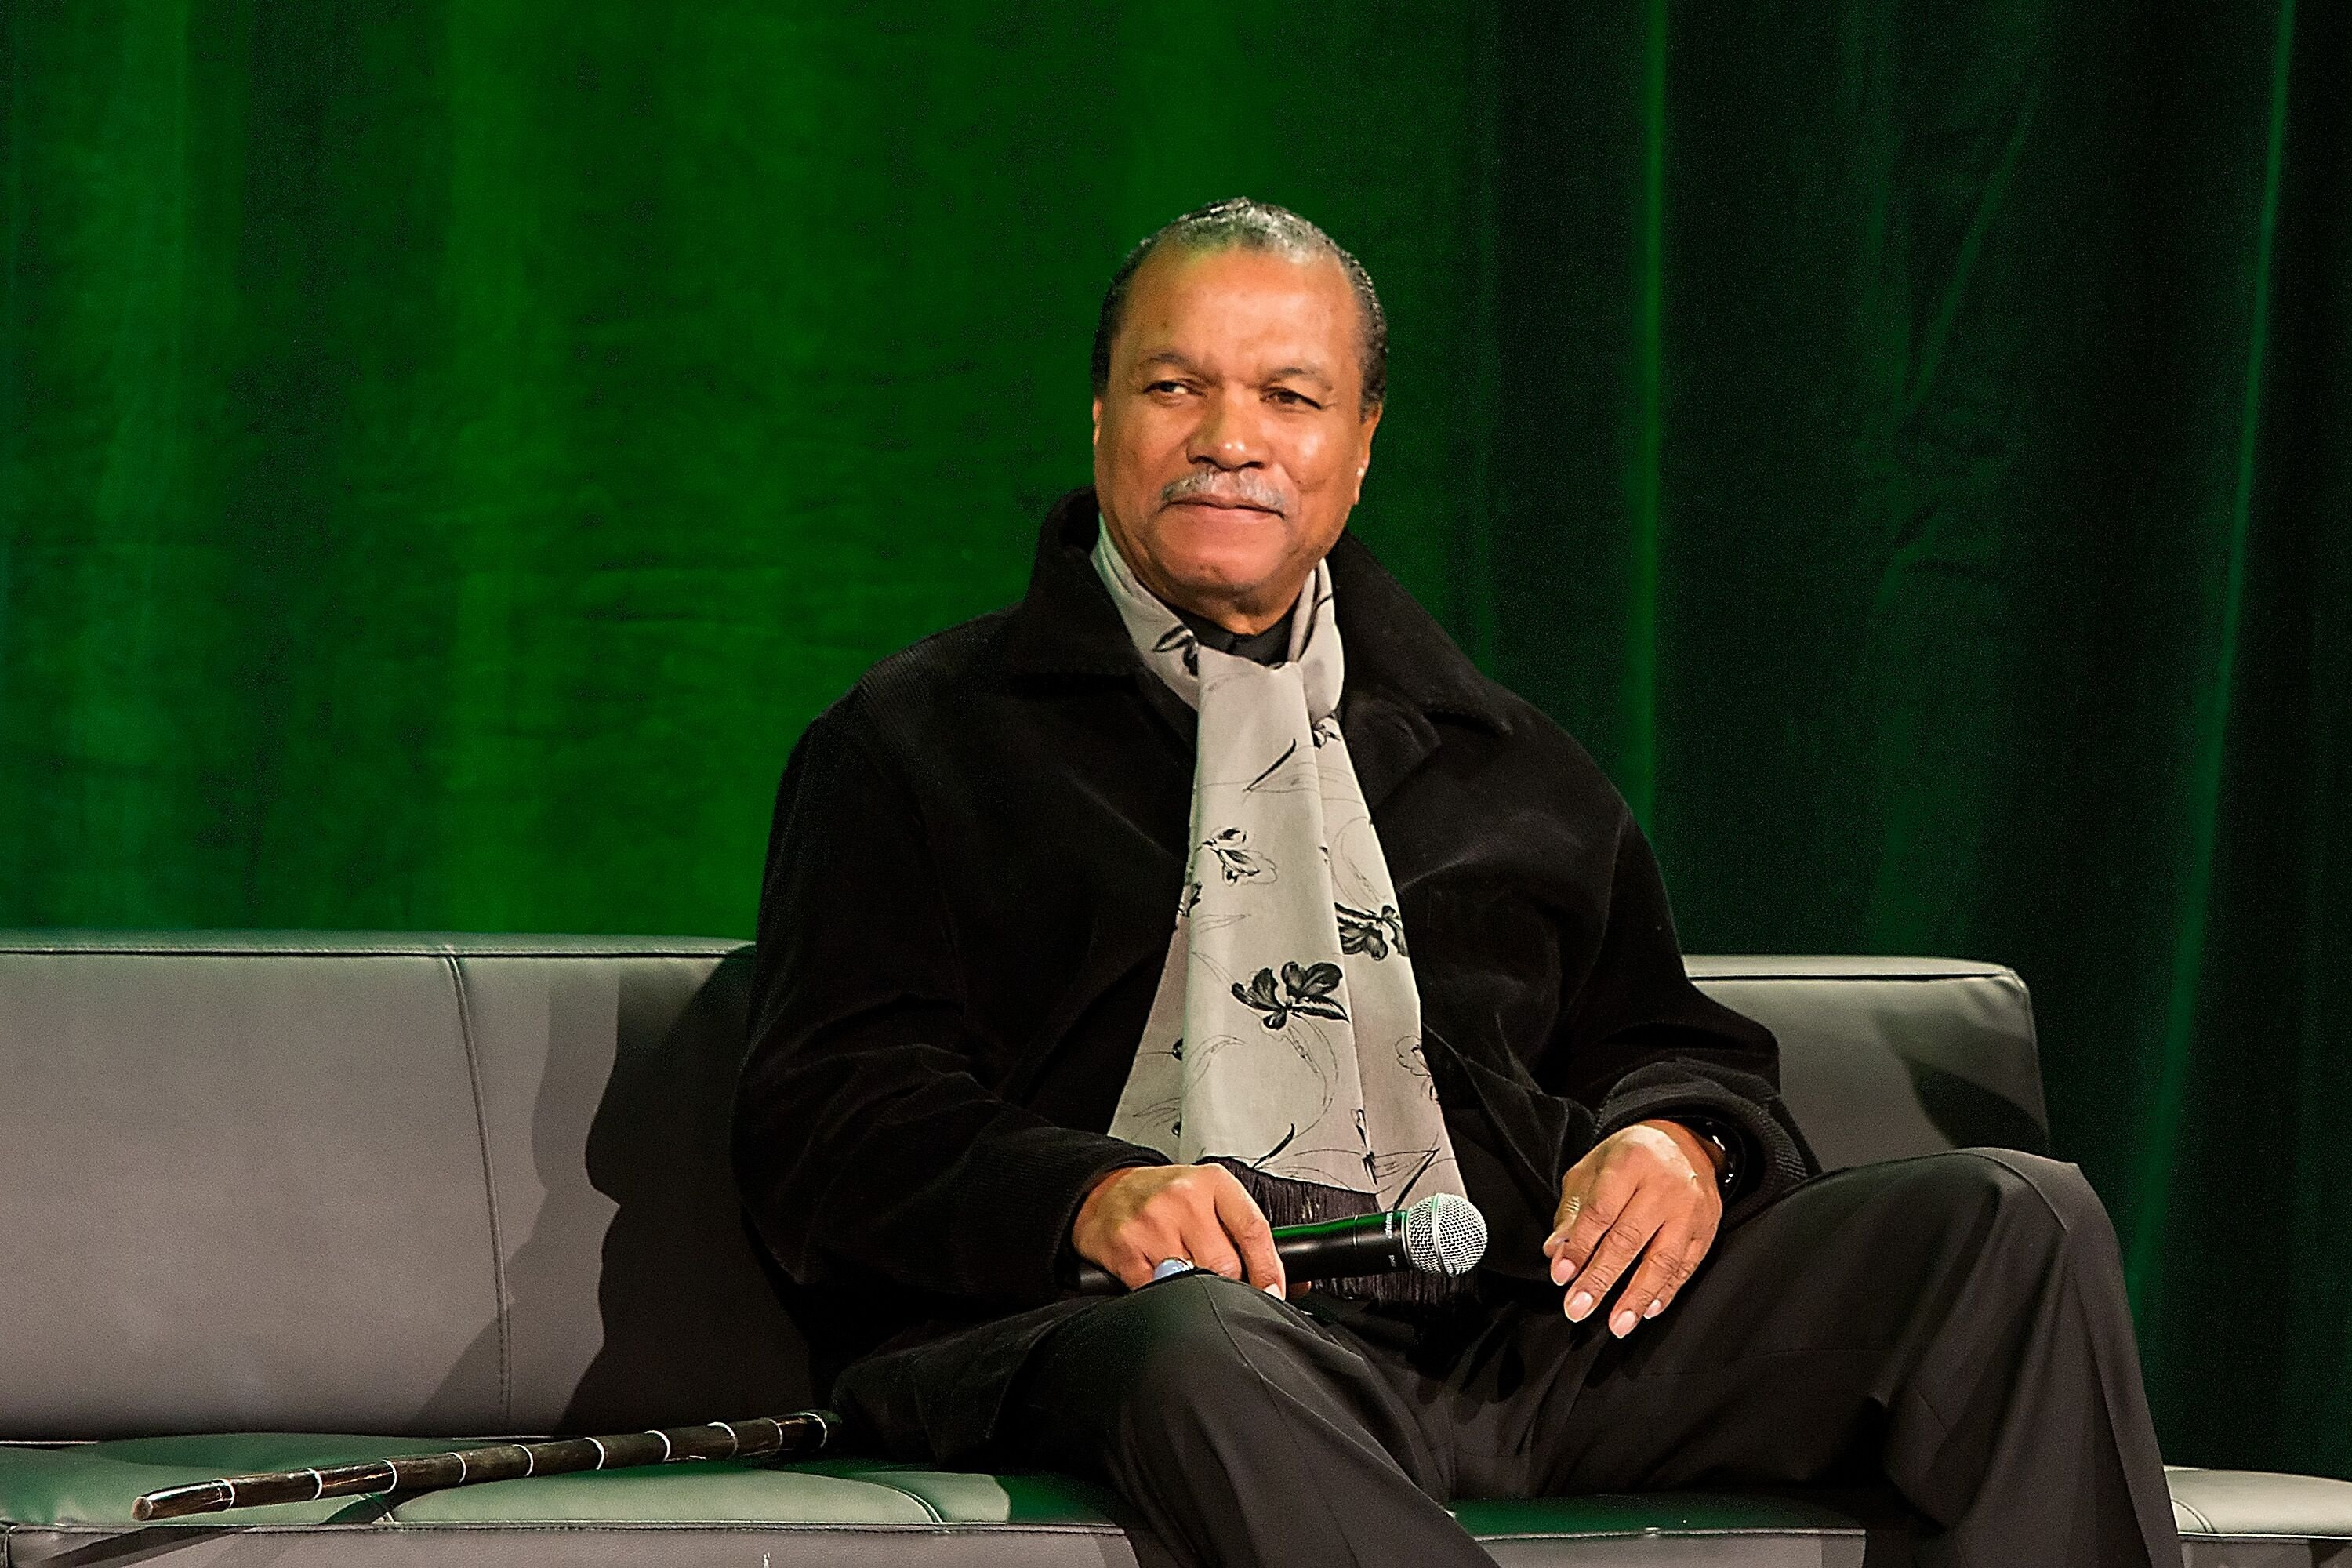 Billy Dee Williams at a speaking engagement | Source: Getty Images/GlobalImagesUkraine